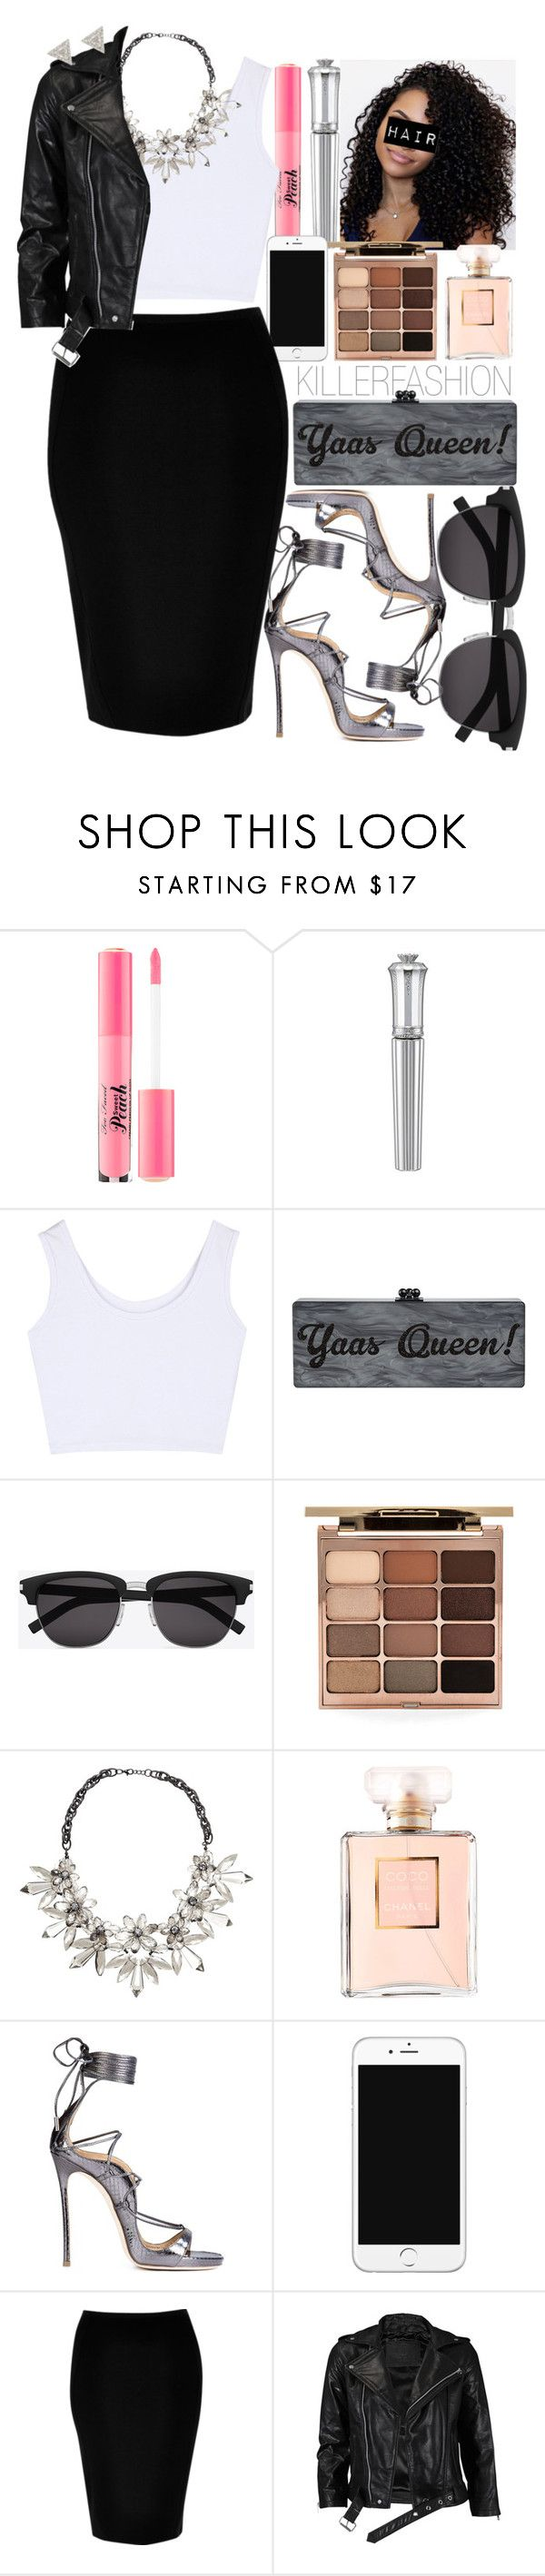 """'Tru' X Lloyd"" by killerfashion ❤ liked on Polyvore featuring Too Faced Cosmetics, Morgan Lane, Yves Saint Laurent, Stila, John Lewis, Chanel, Dsquared2, River Island, VIPARO and Lizzie Mandler"